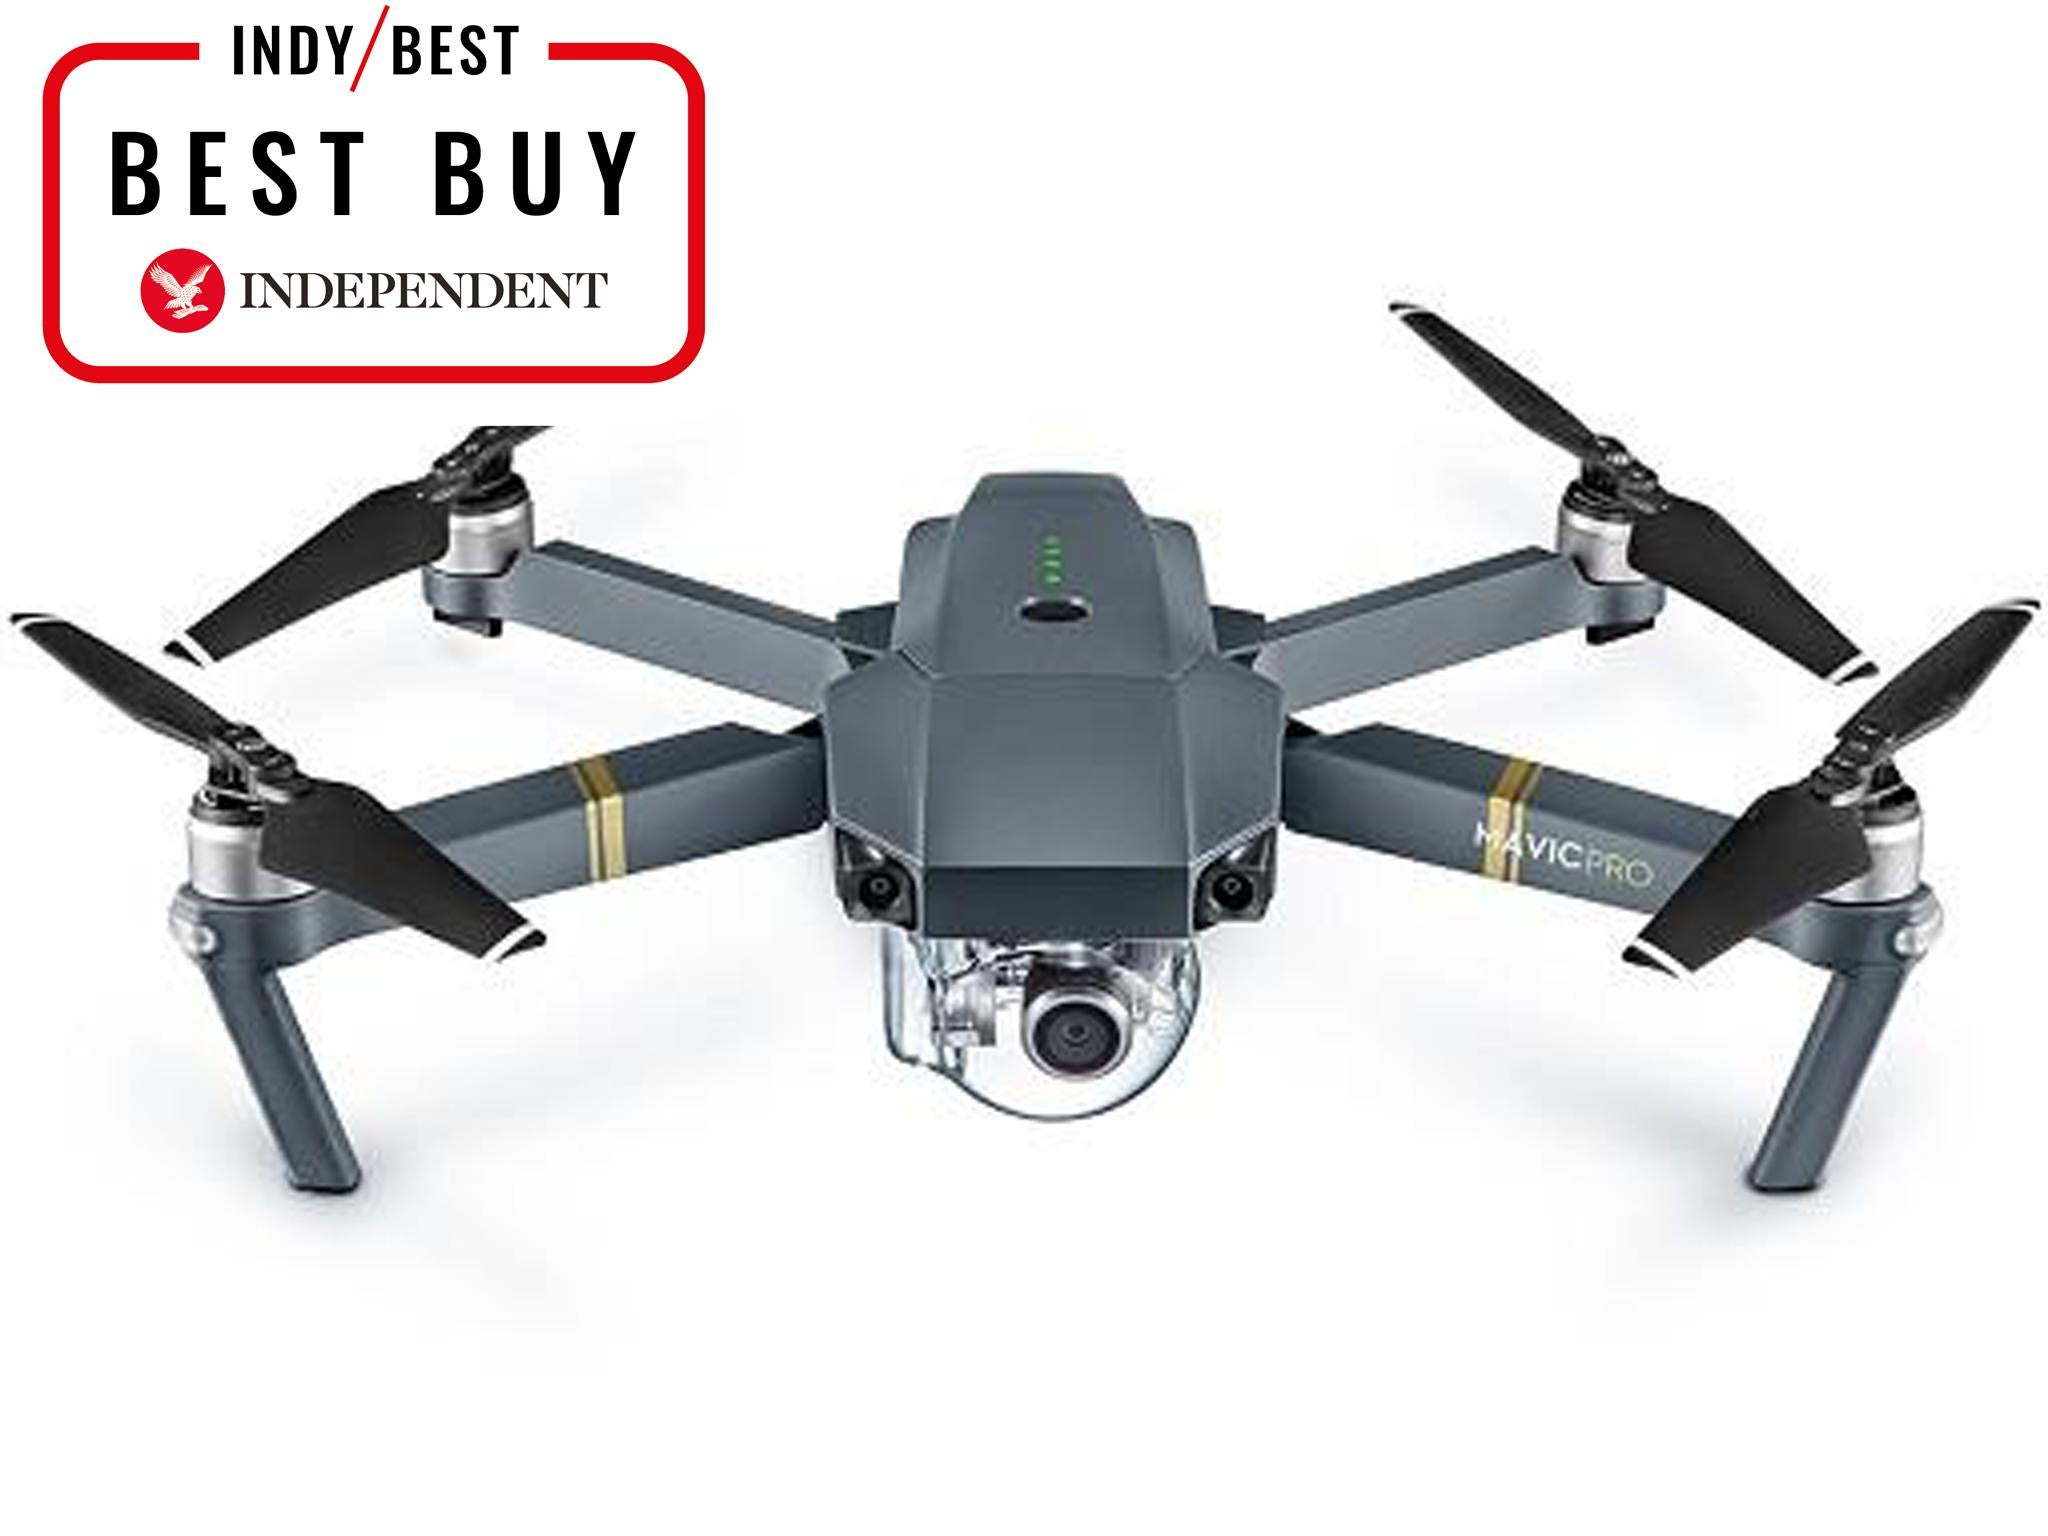 Best drone: For battery life, video quality and range